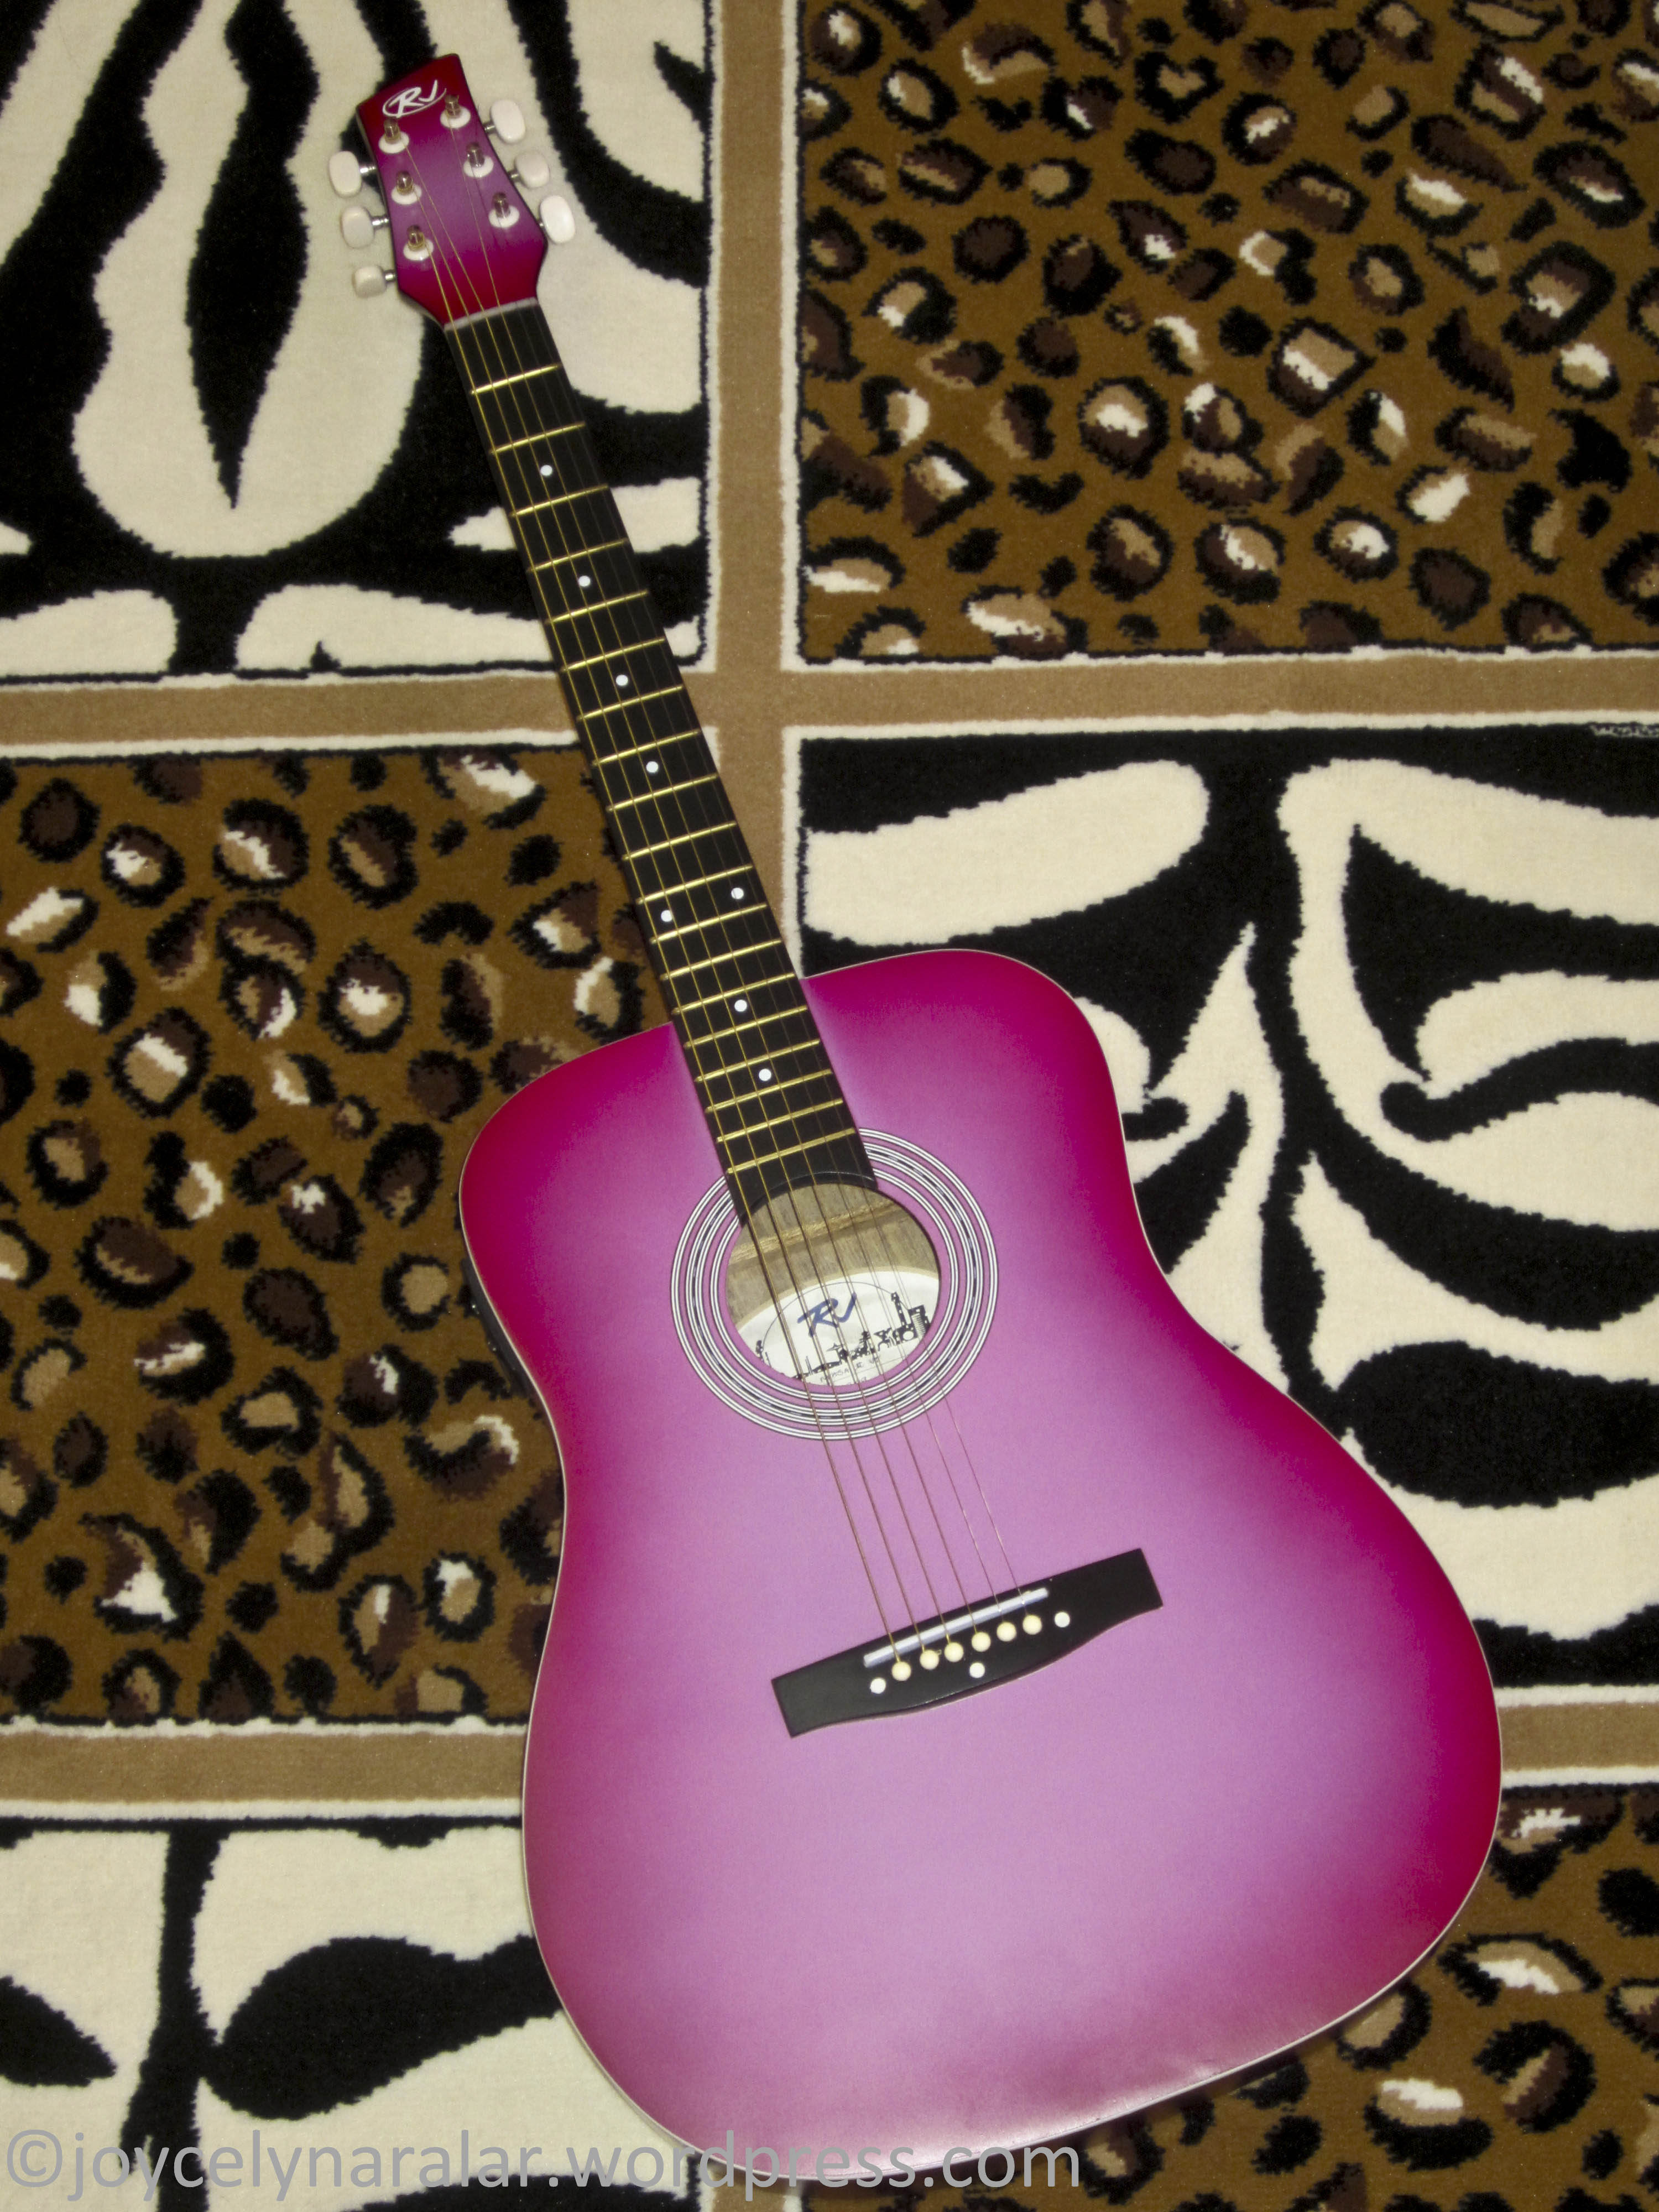 Rj Guitar Superistar And Her Universe